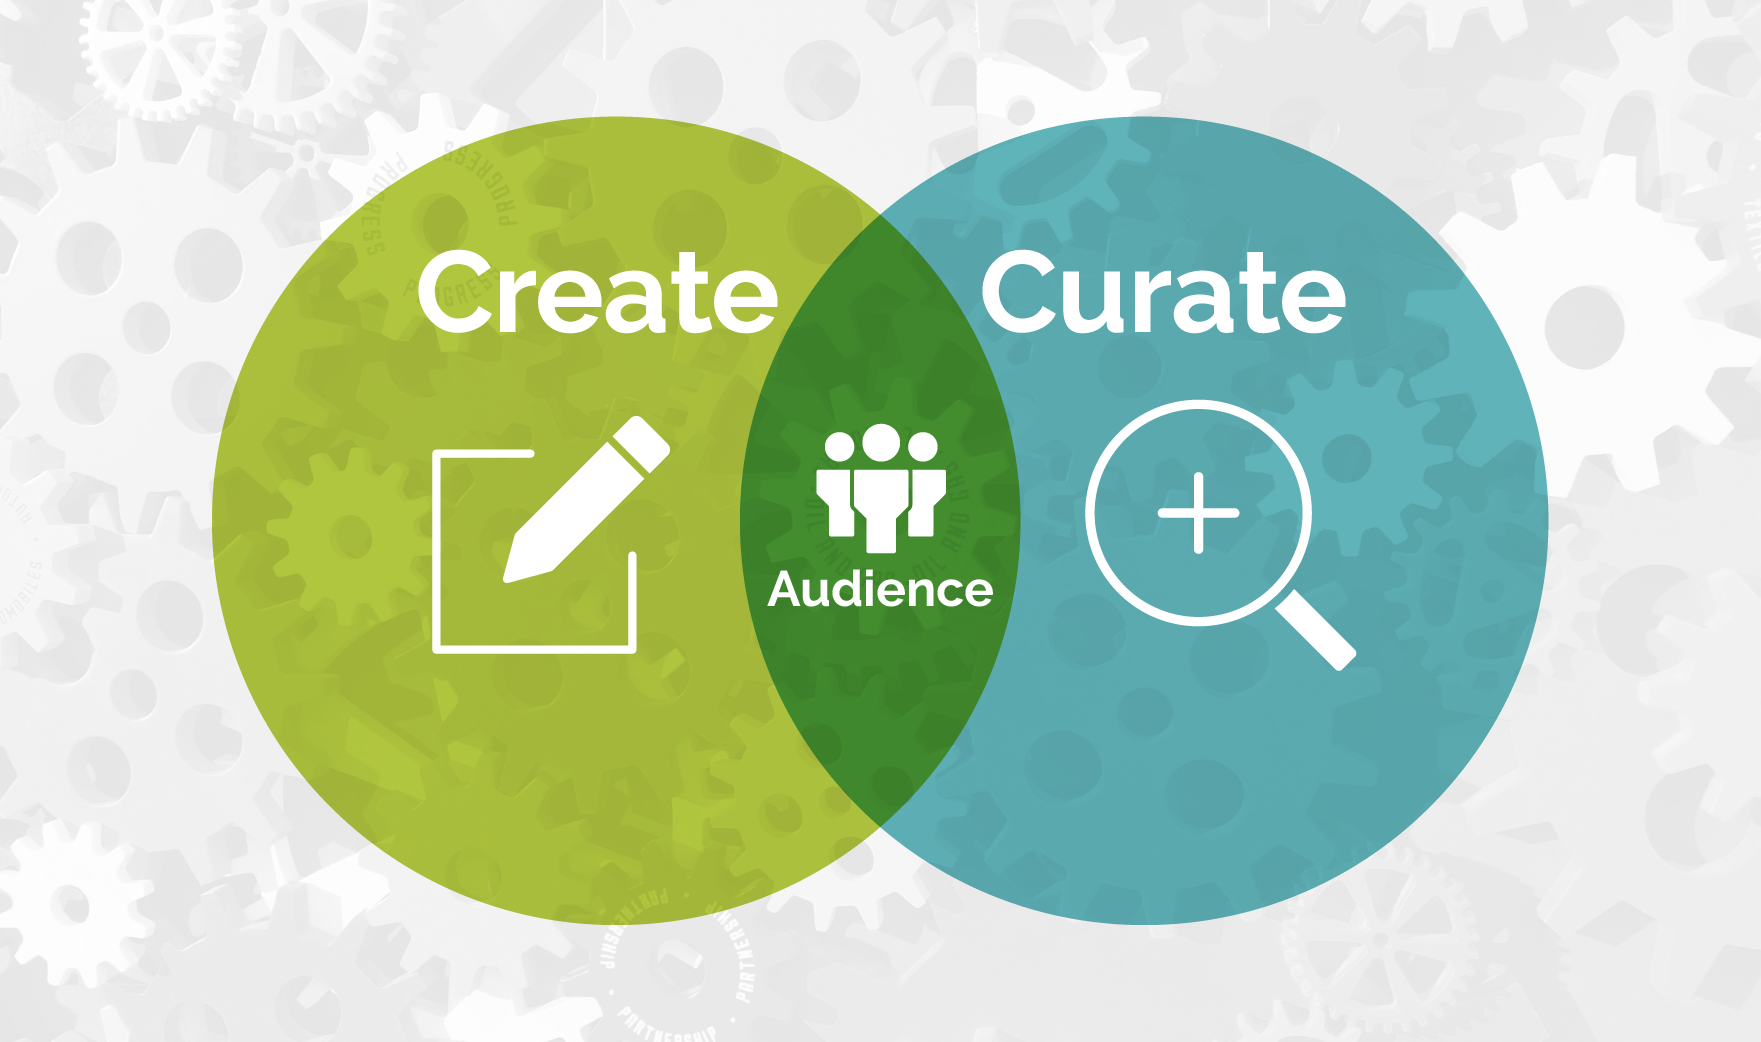 Curating content the right way: why and how